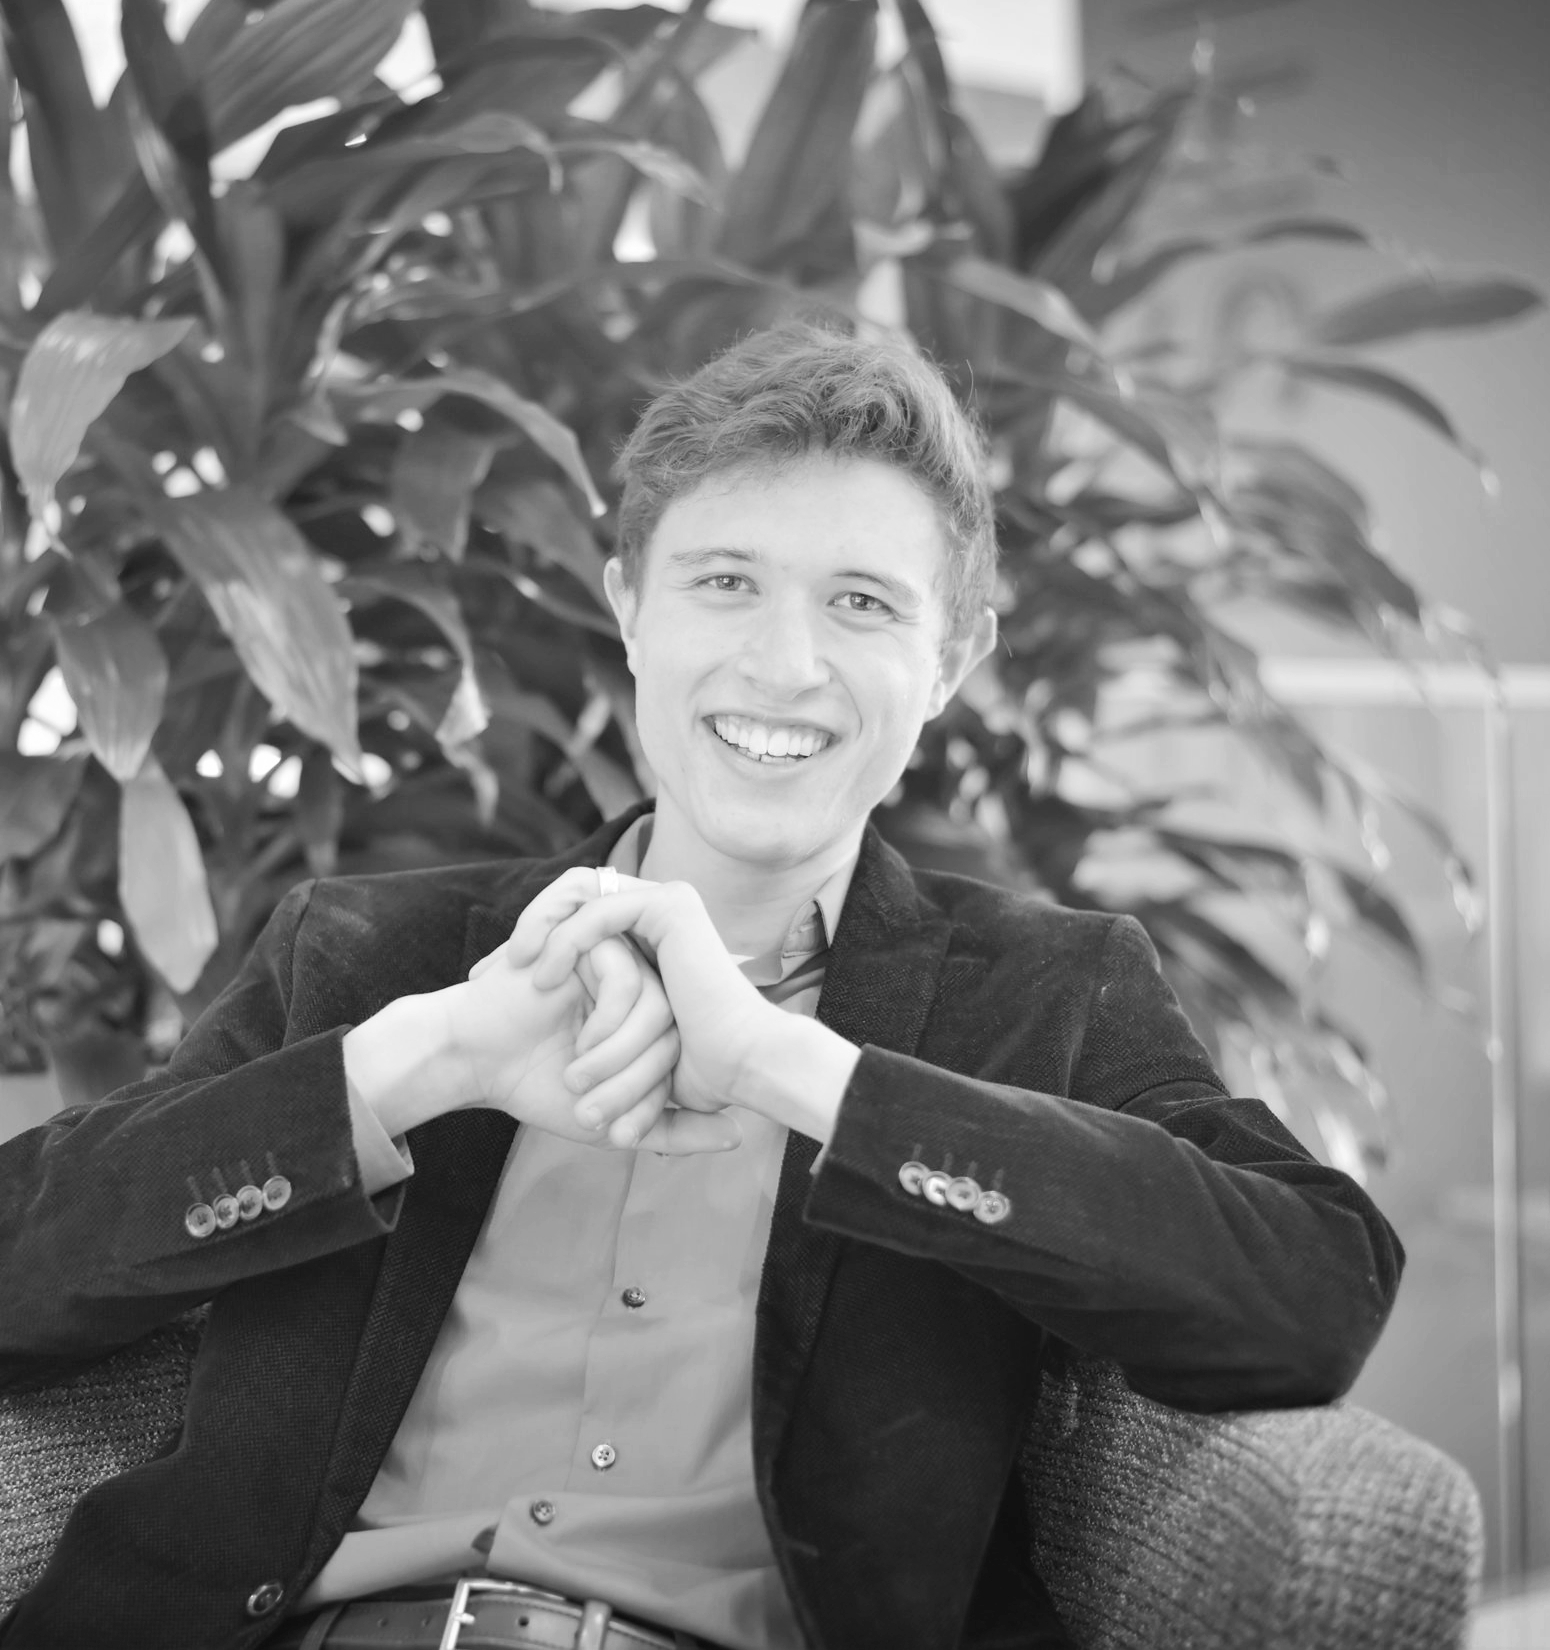 Mitchell Elequin is the Business Development Lead for Houseplant Games. He is from Austin, Texas, and founded HPG because his closest friendships have been formed over character sheets, twenty-sided dice, and competitive board games. -